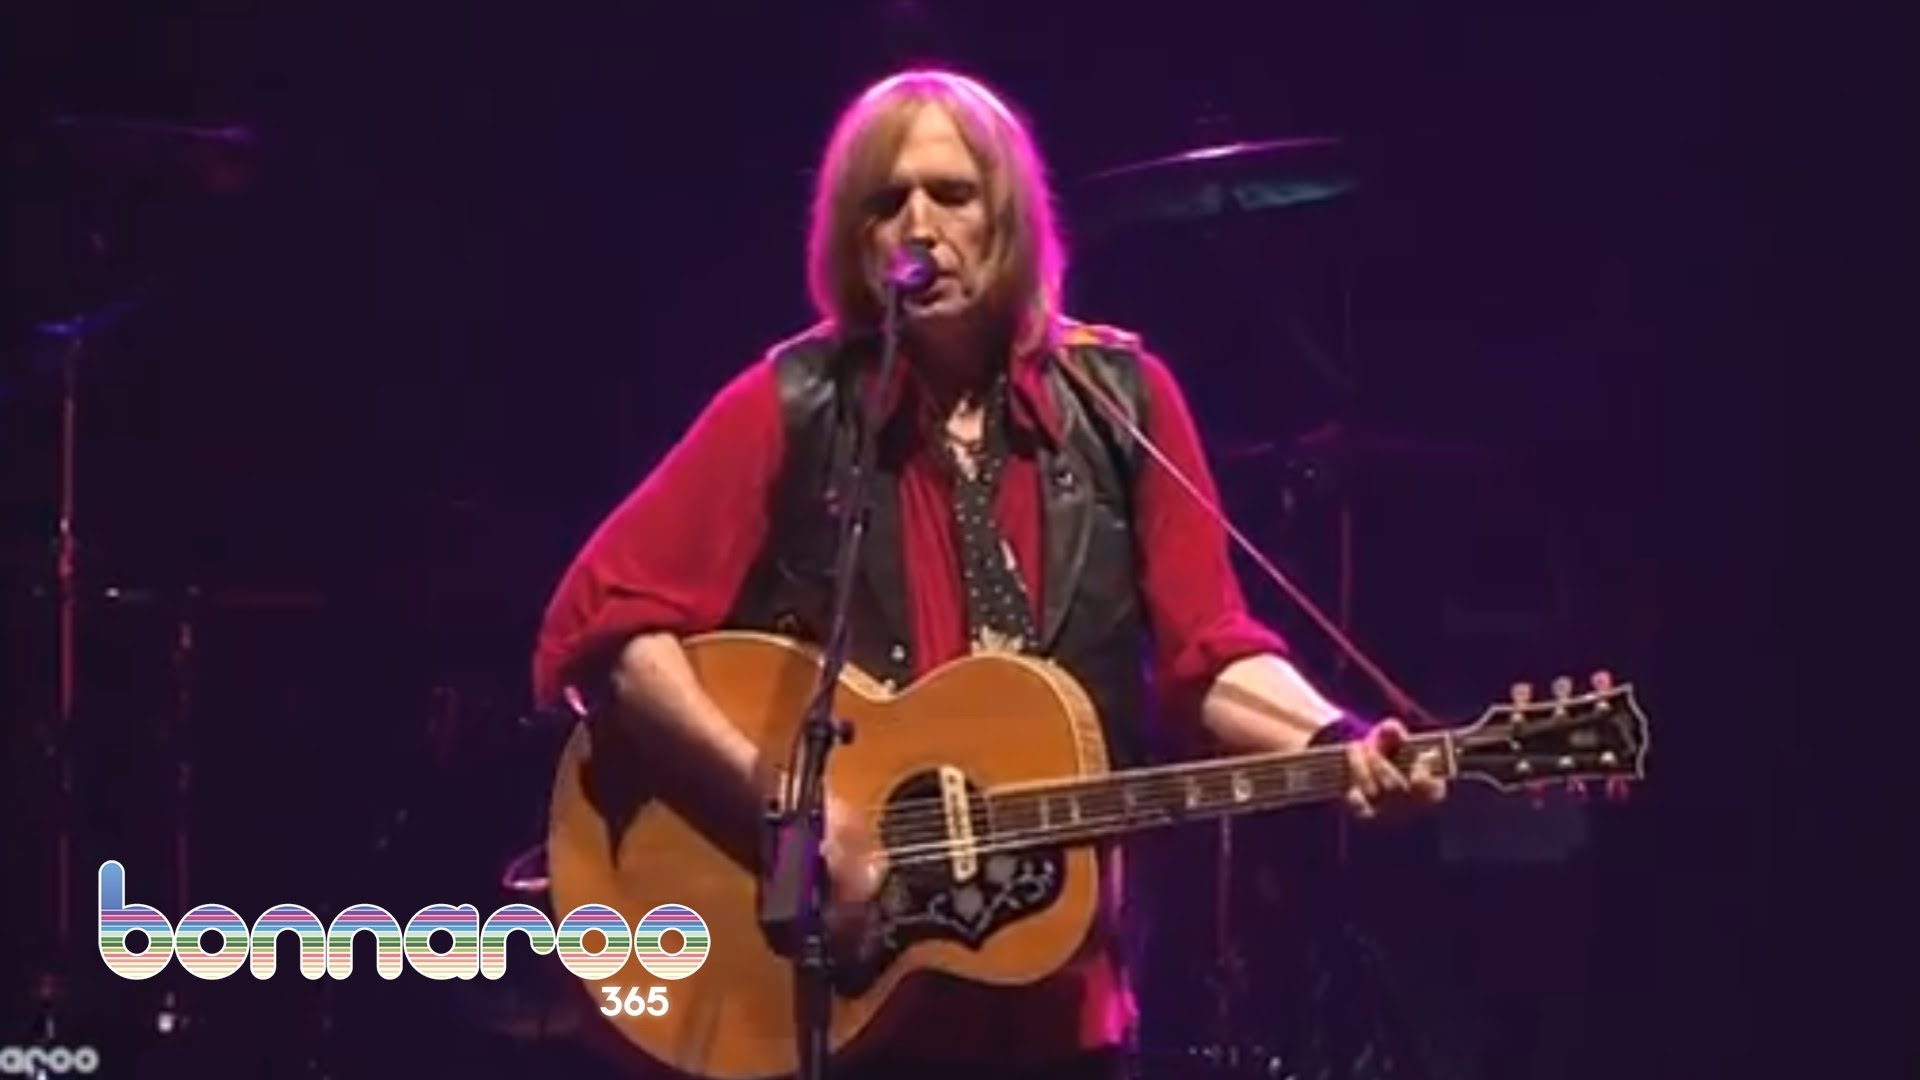 Throwback Thursday Tom Petty Plays Learning To Fly Acoustic